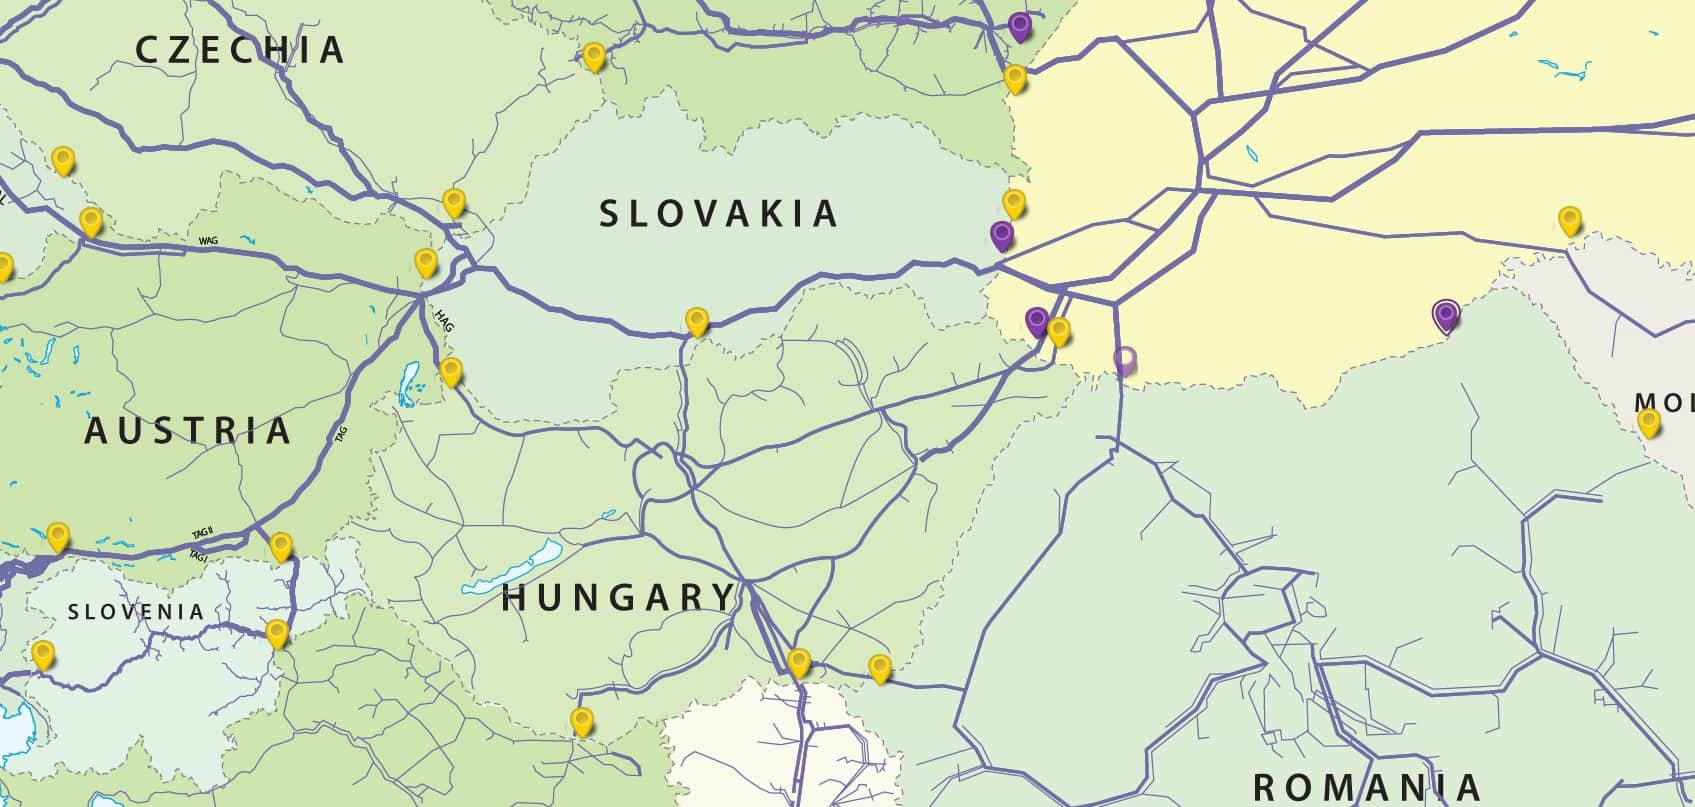 In case Russia stops the transit, Ukrainian storages are in place to help Hungary pass next winter